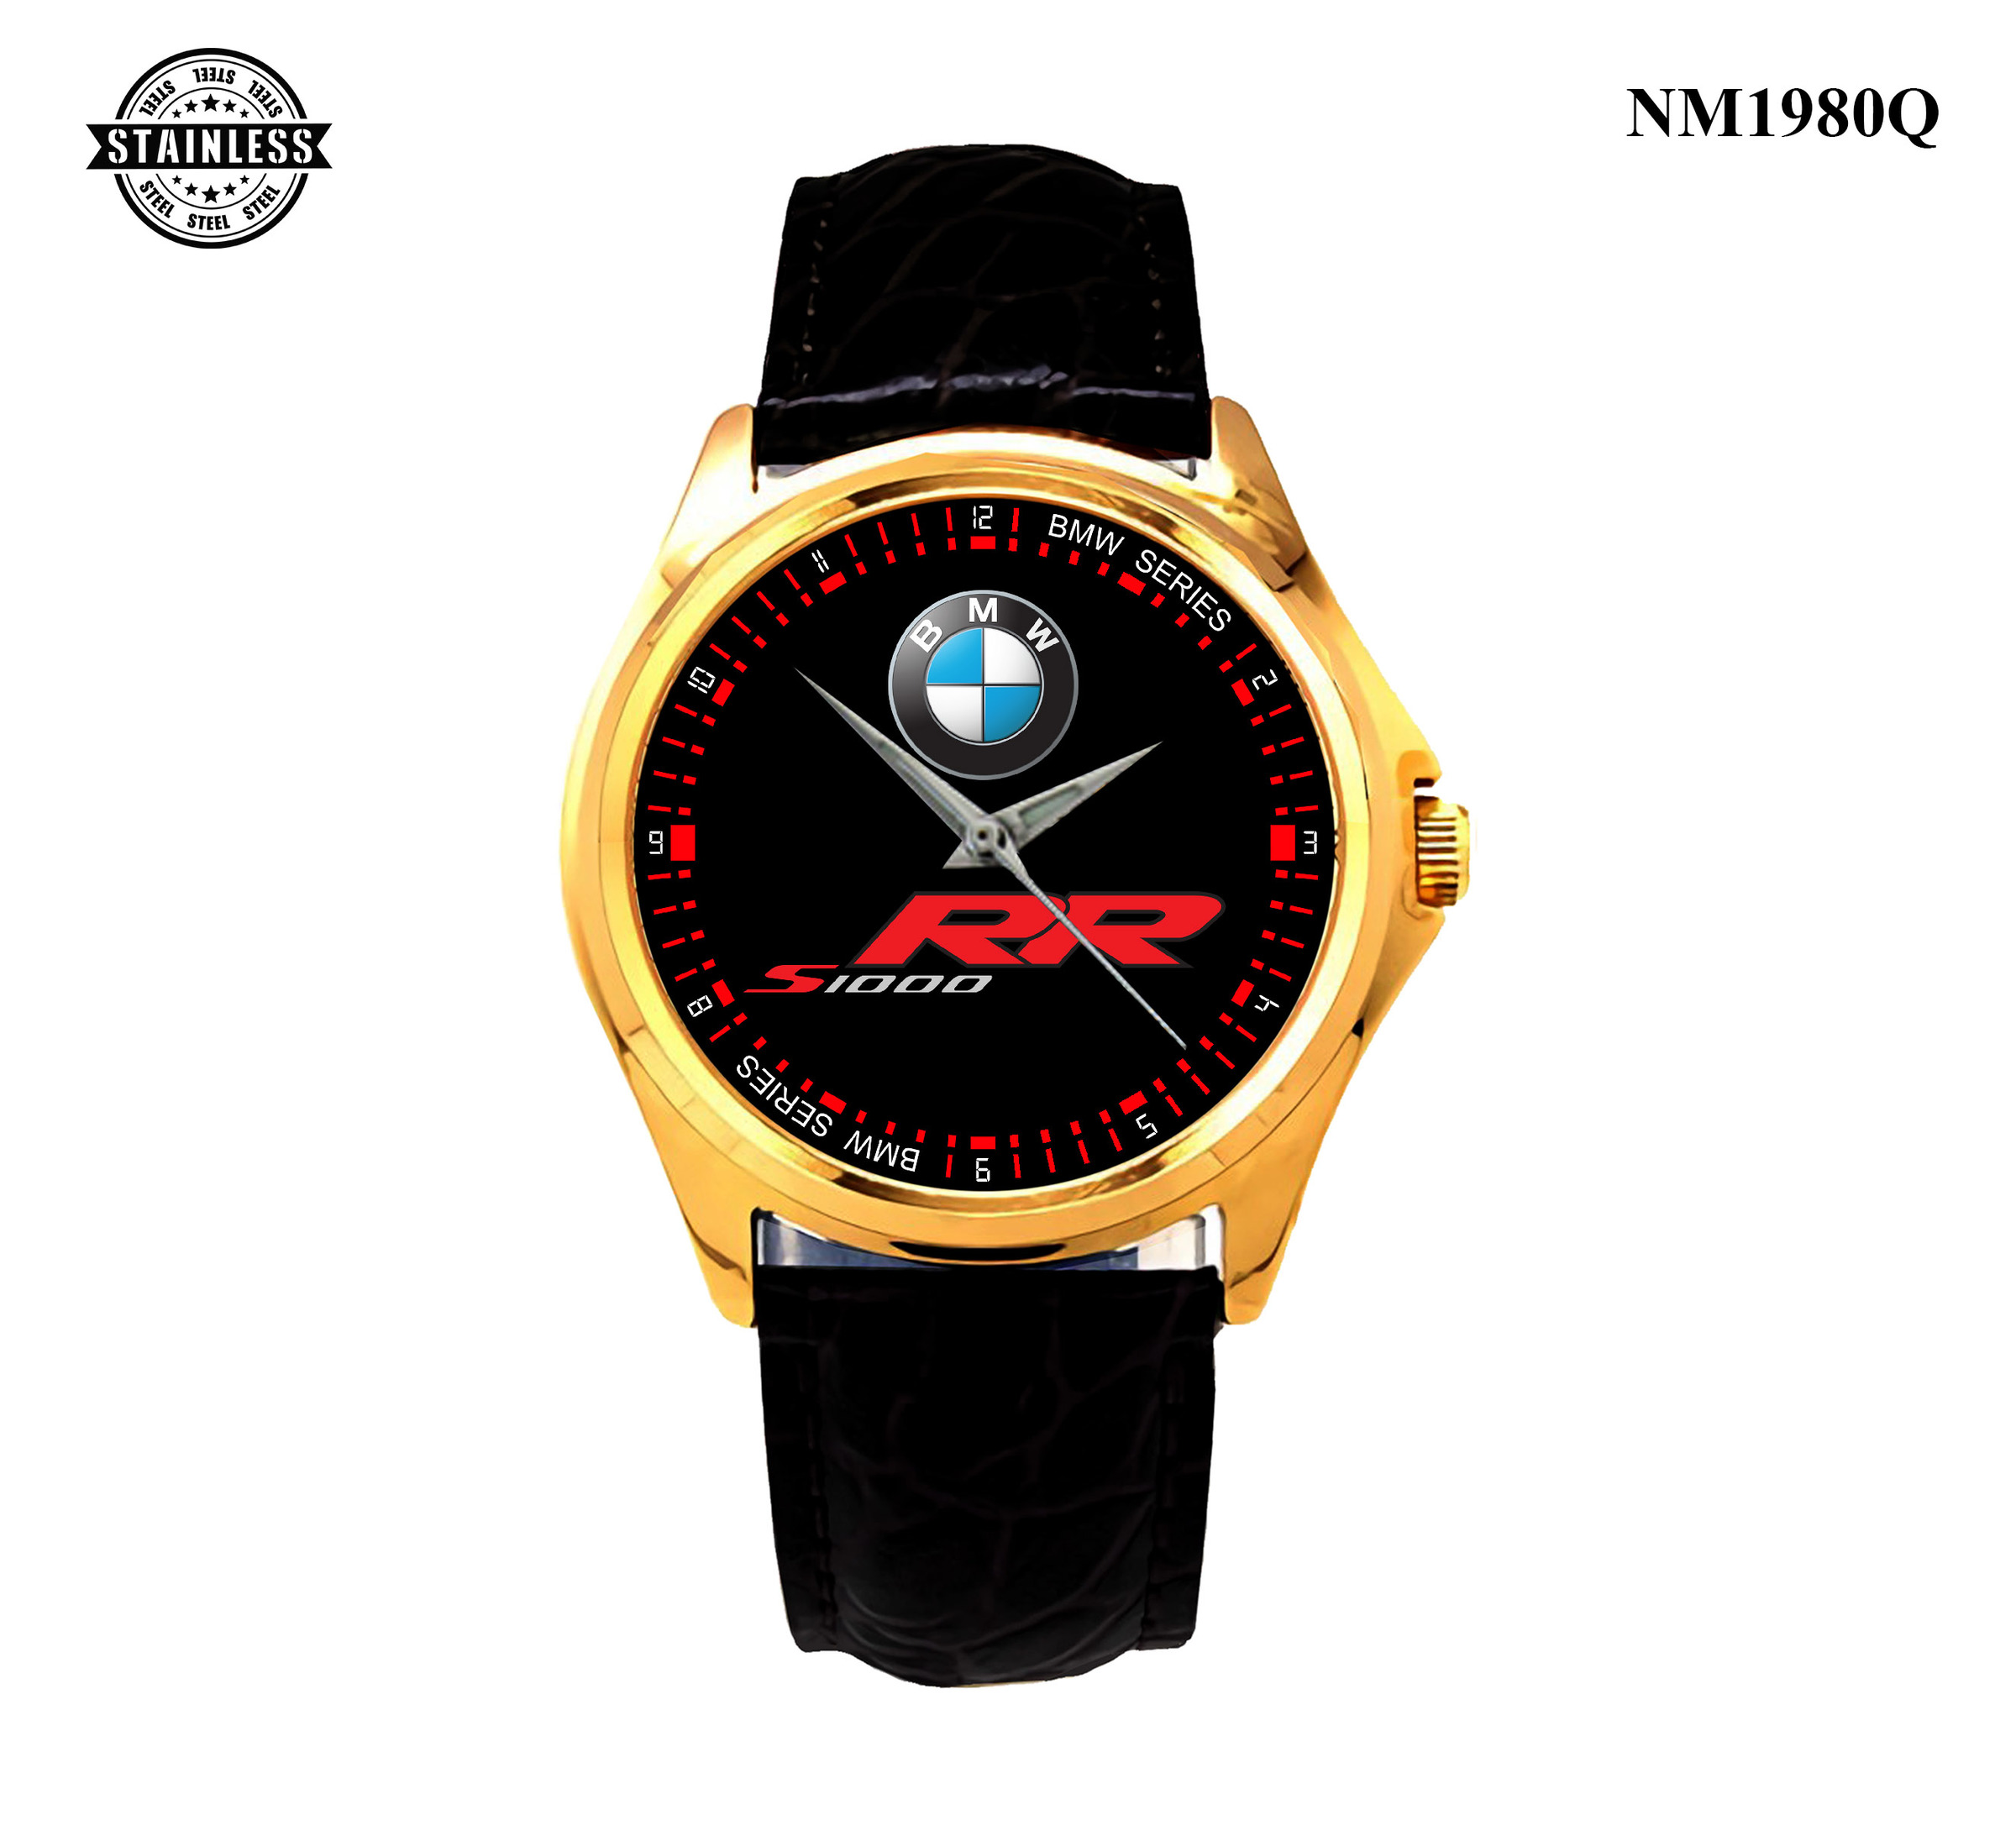 1.53 New Design Mens jewelery BMW S 1000 RR Sport Leather Watch Gold.jpg